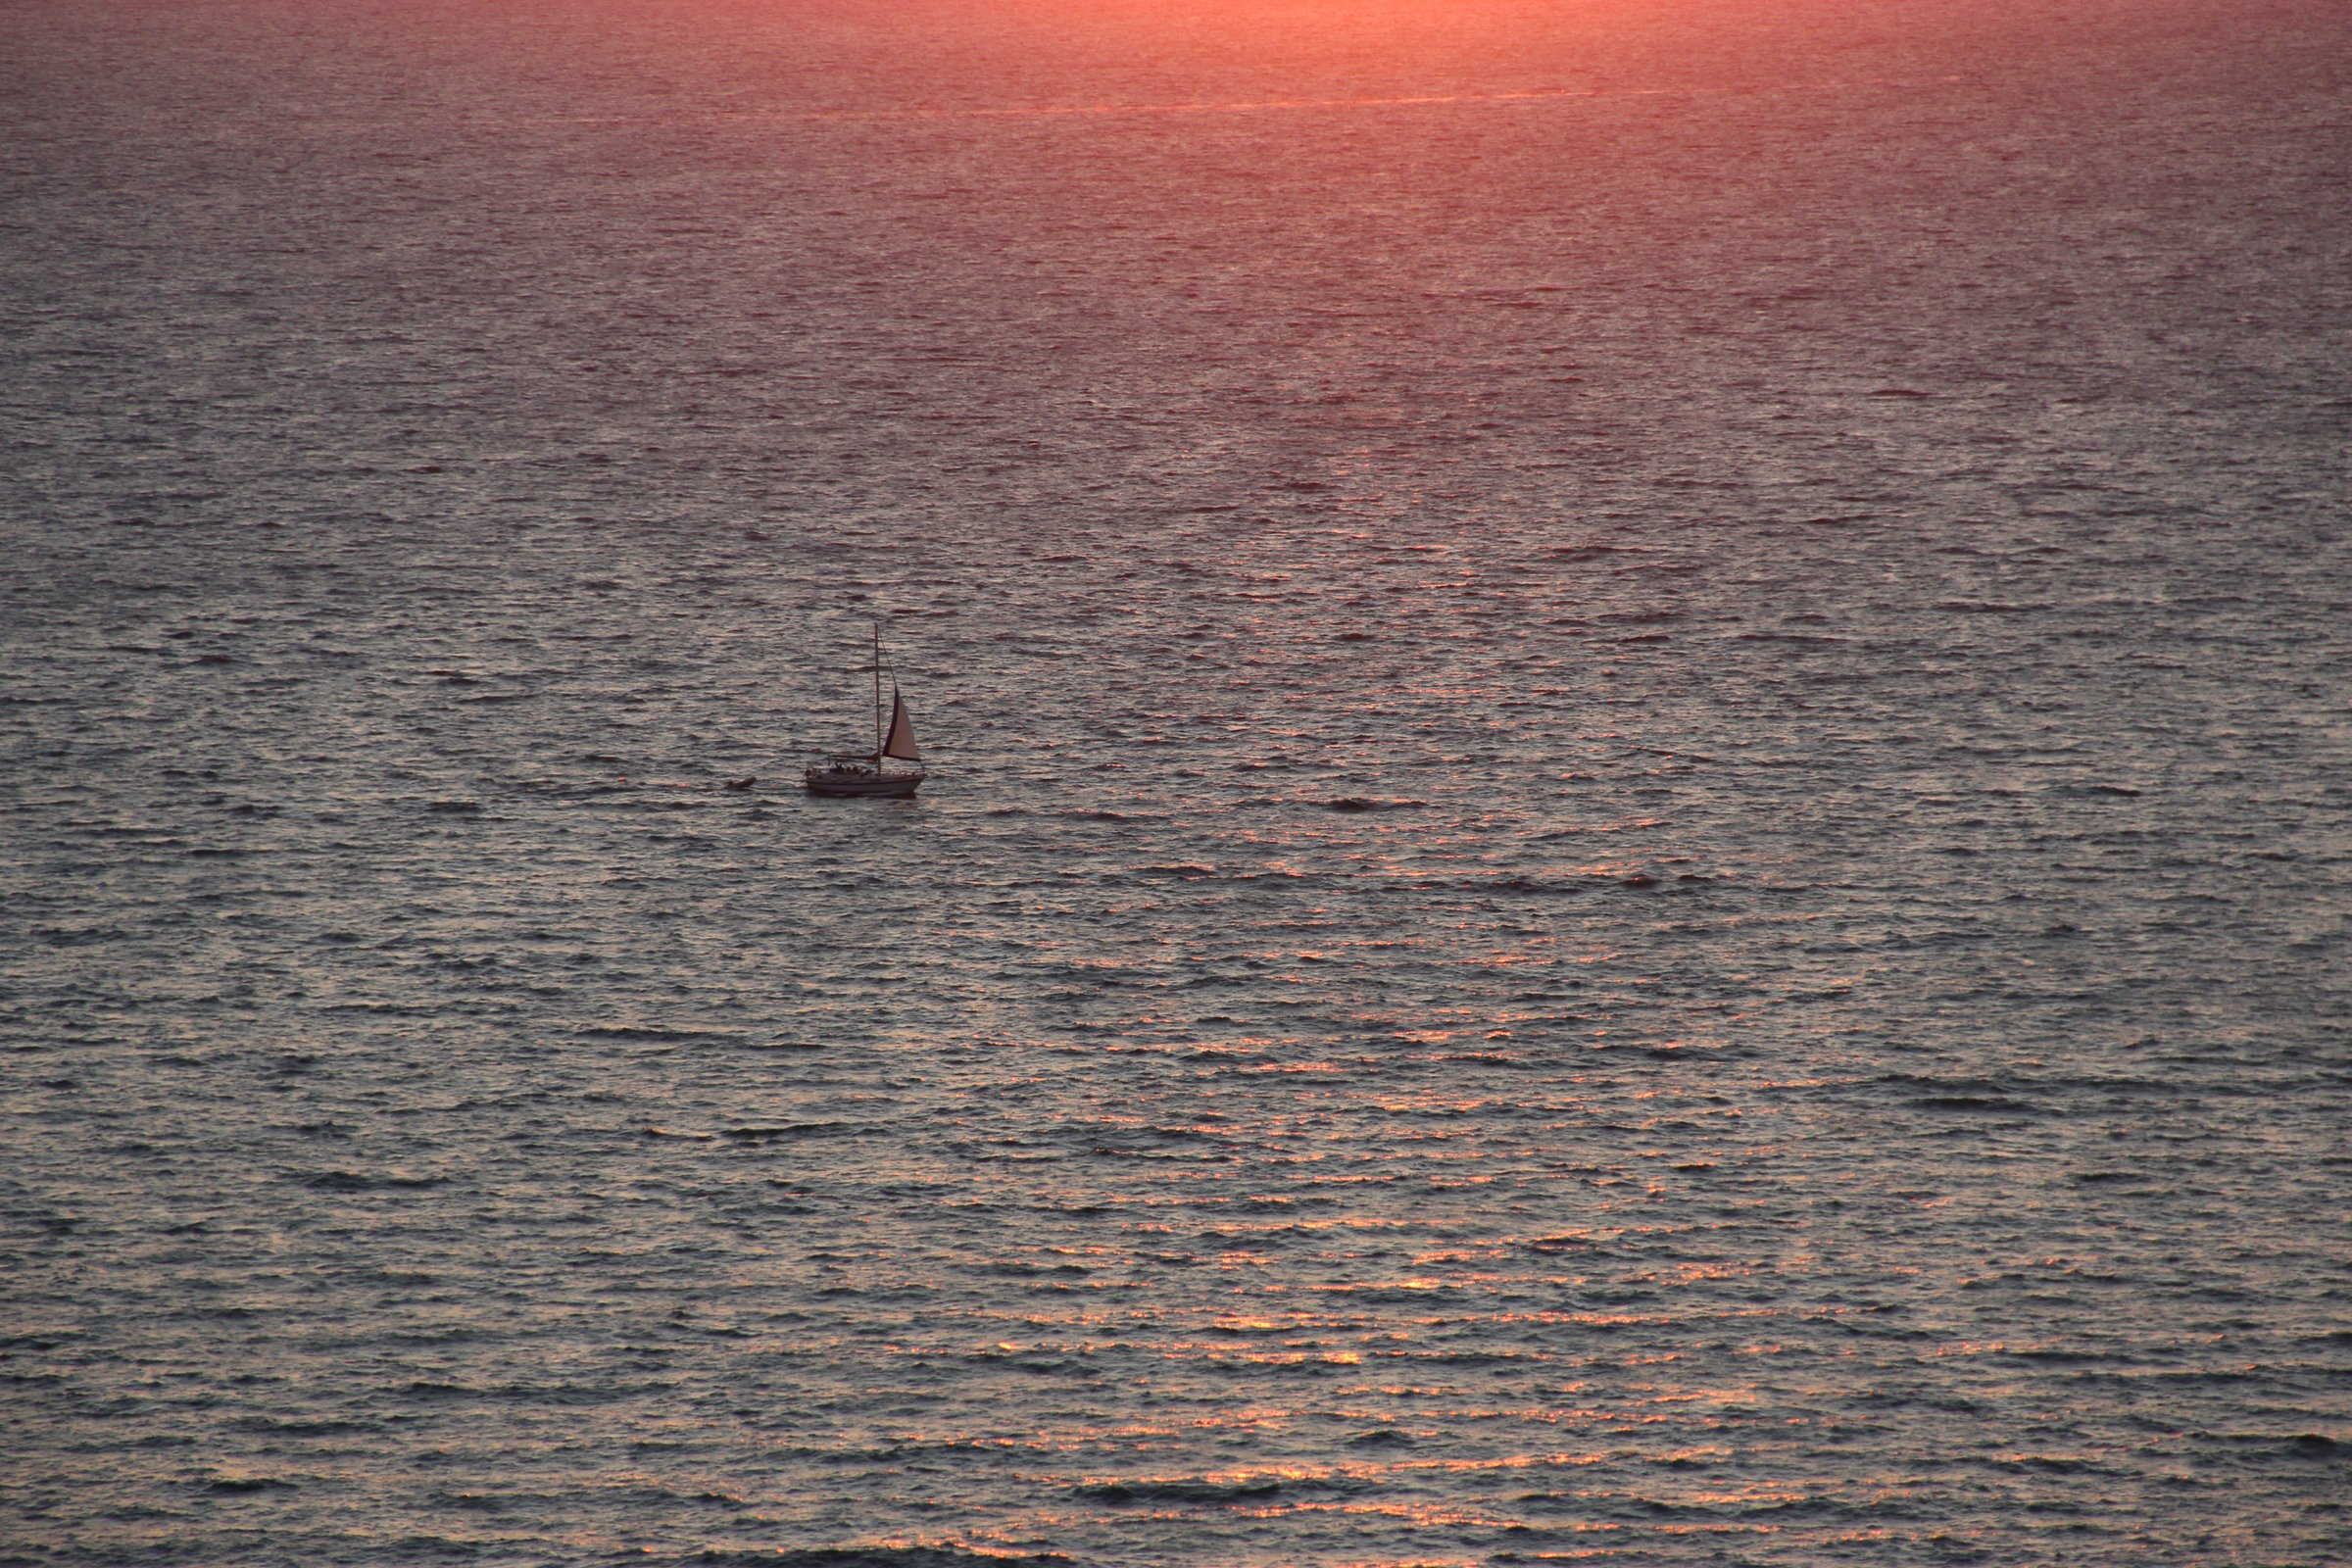 Sailboat In Middle Of Ocean